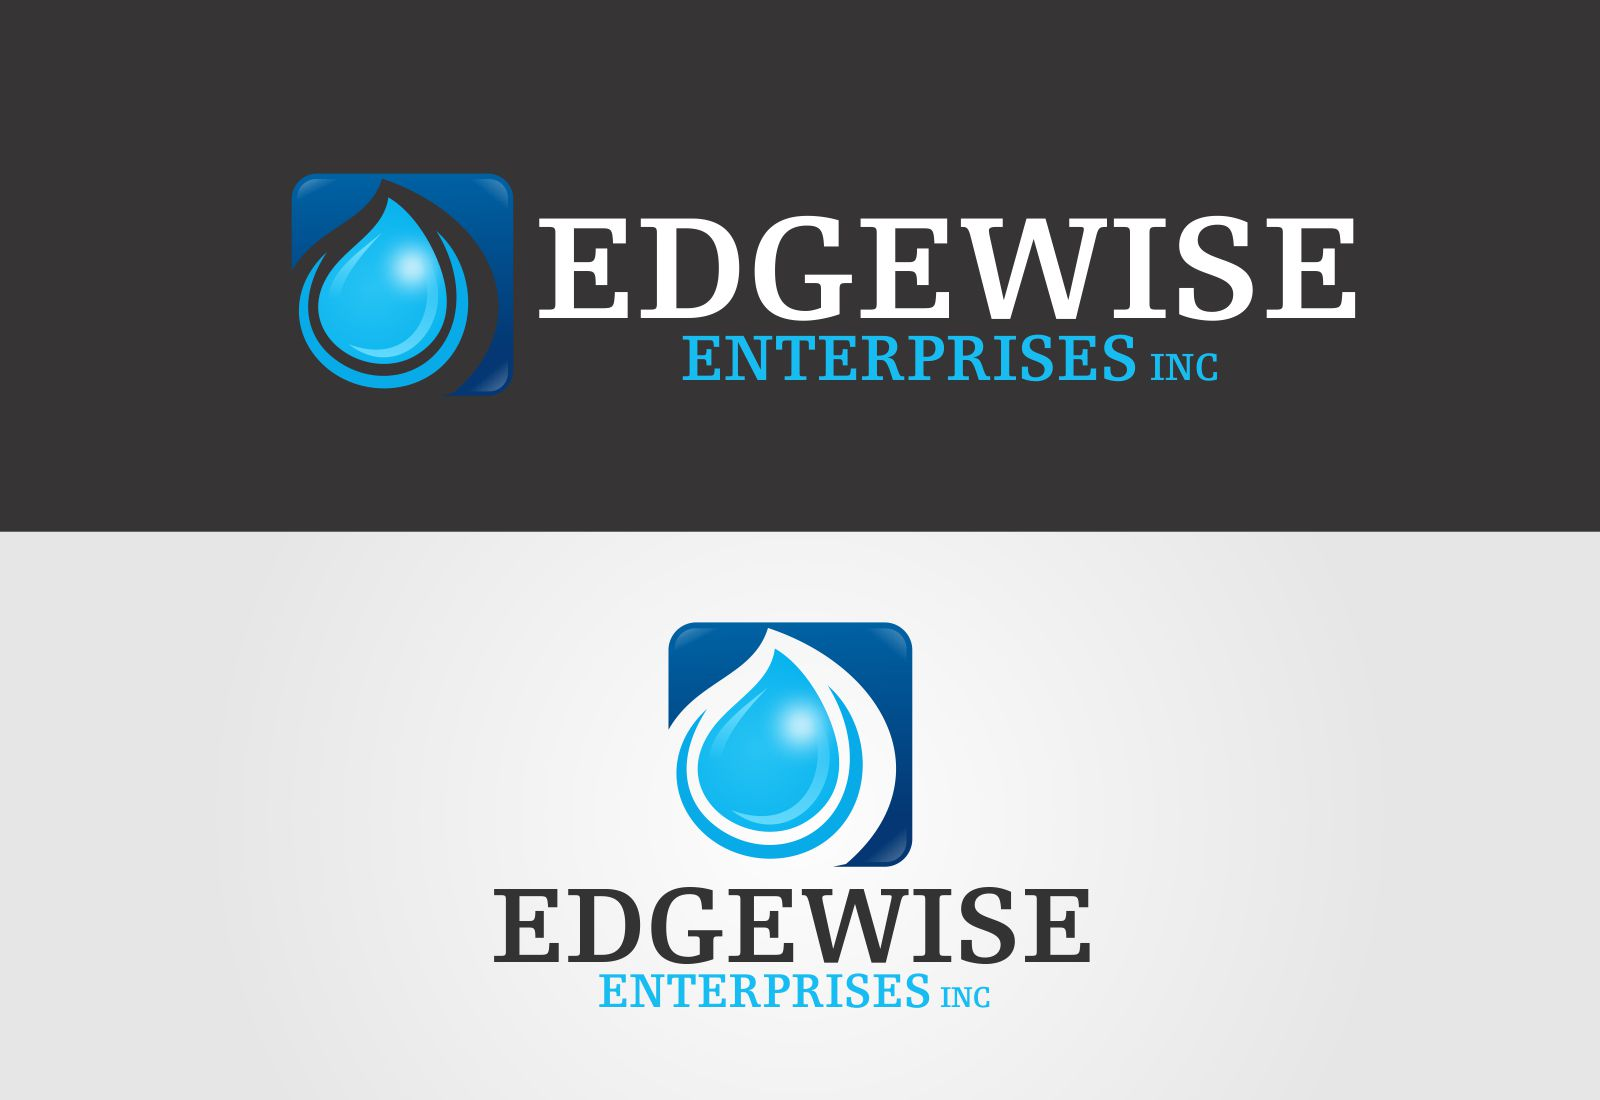 Logo Design by Web Sourcing - Entry No. 55 in the Logo Design Contest New Logo Design for Edgewise Enterprises Inc..